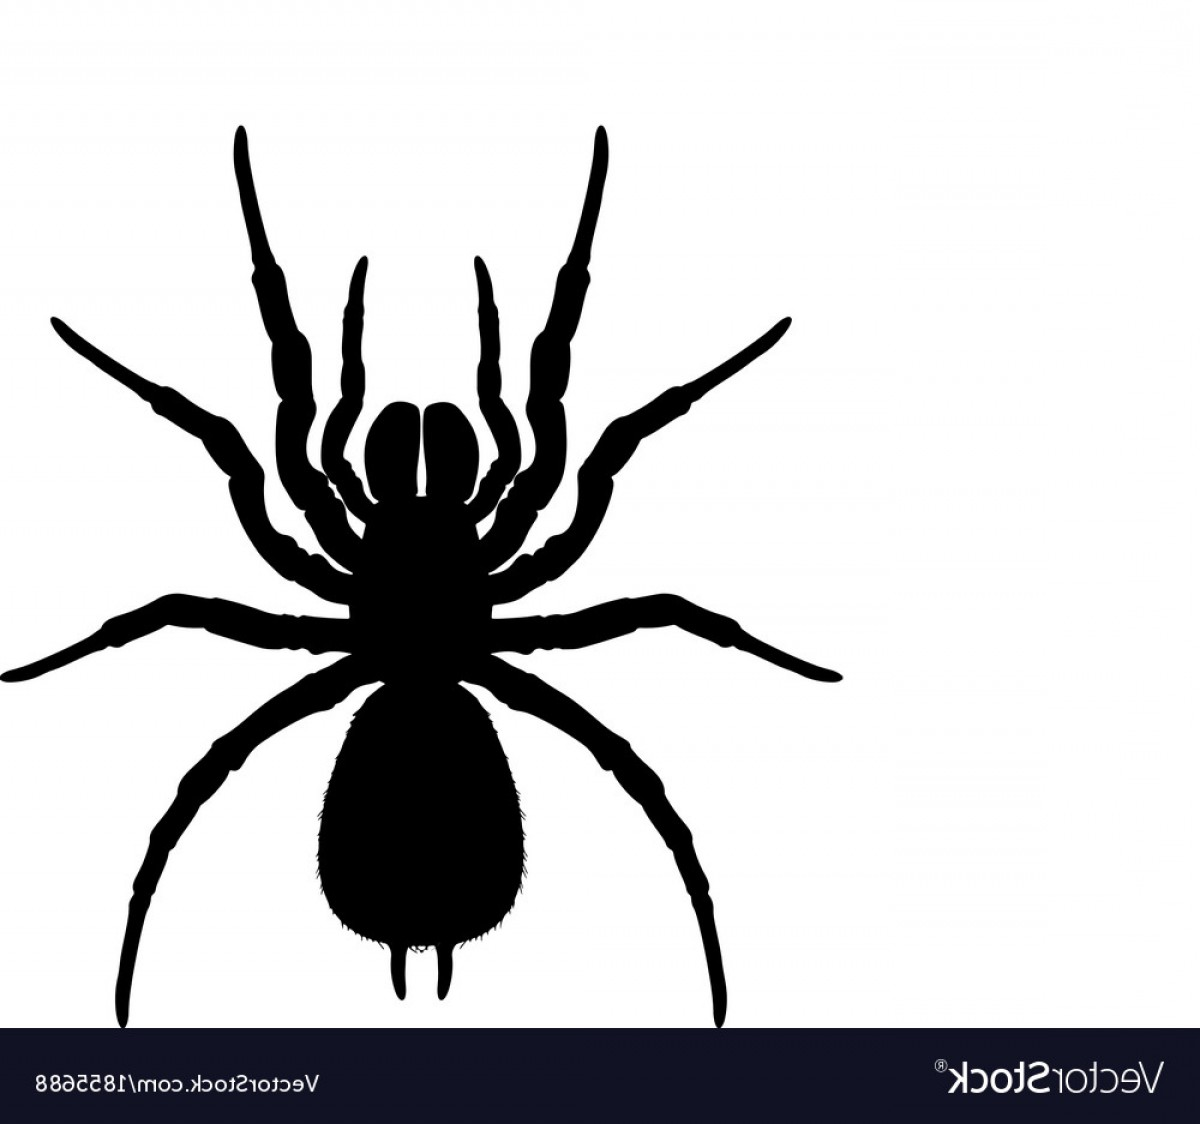 Easy Spider Vector Illustration: Silhouette Of A Spider Vector